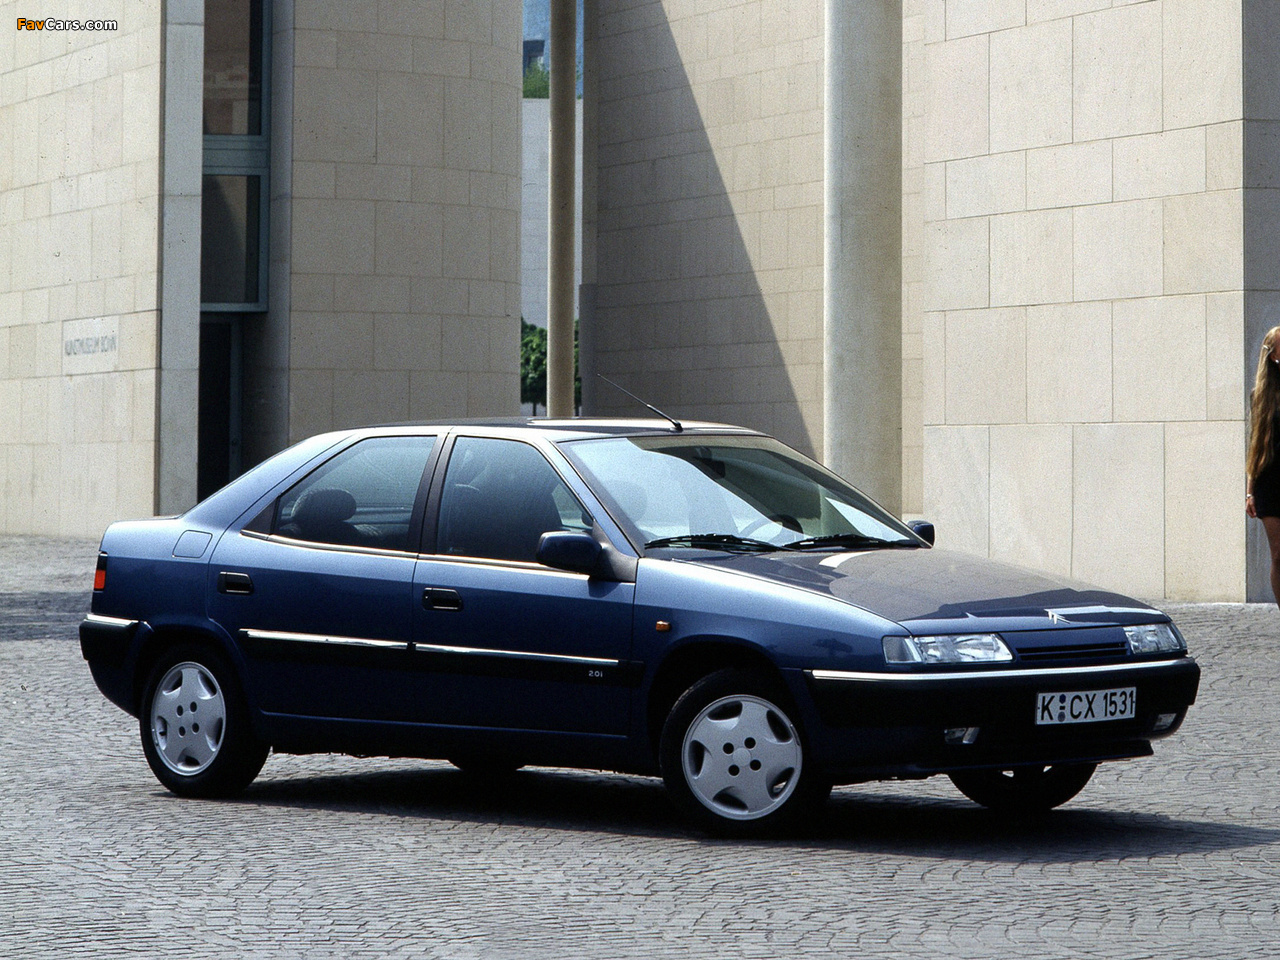 1993 citroen xantia photos informations articles. Black Bedroom Furniture Sets. Home Design Ideas